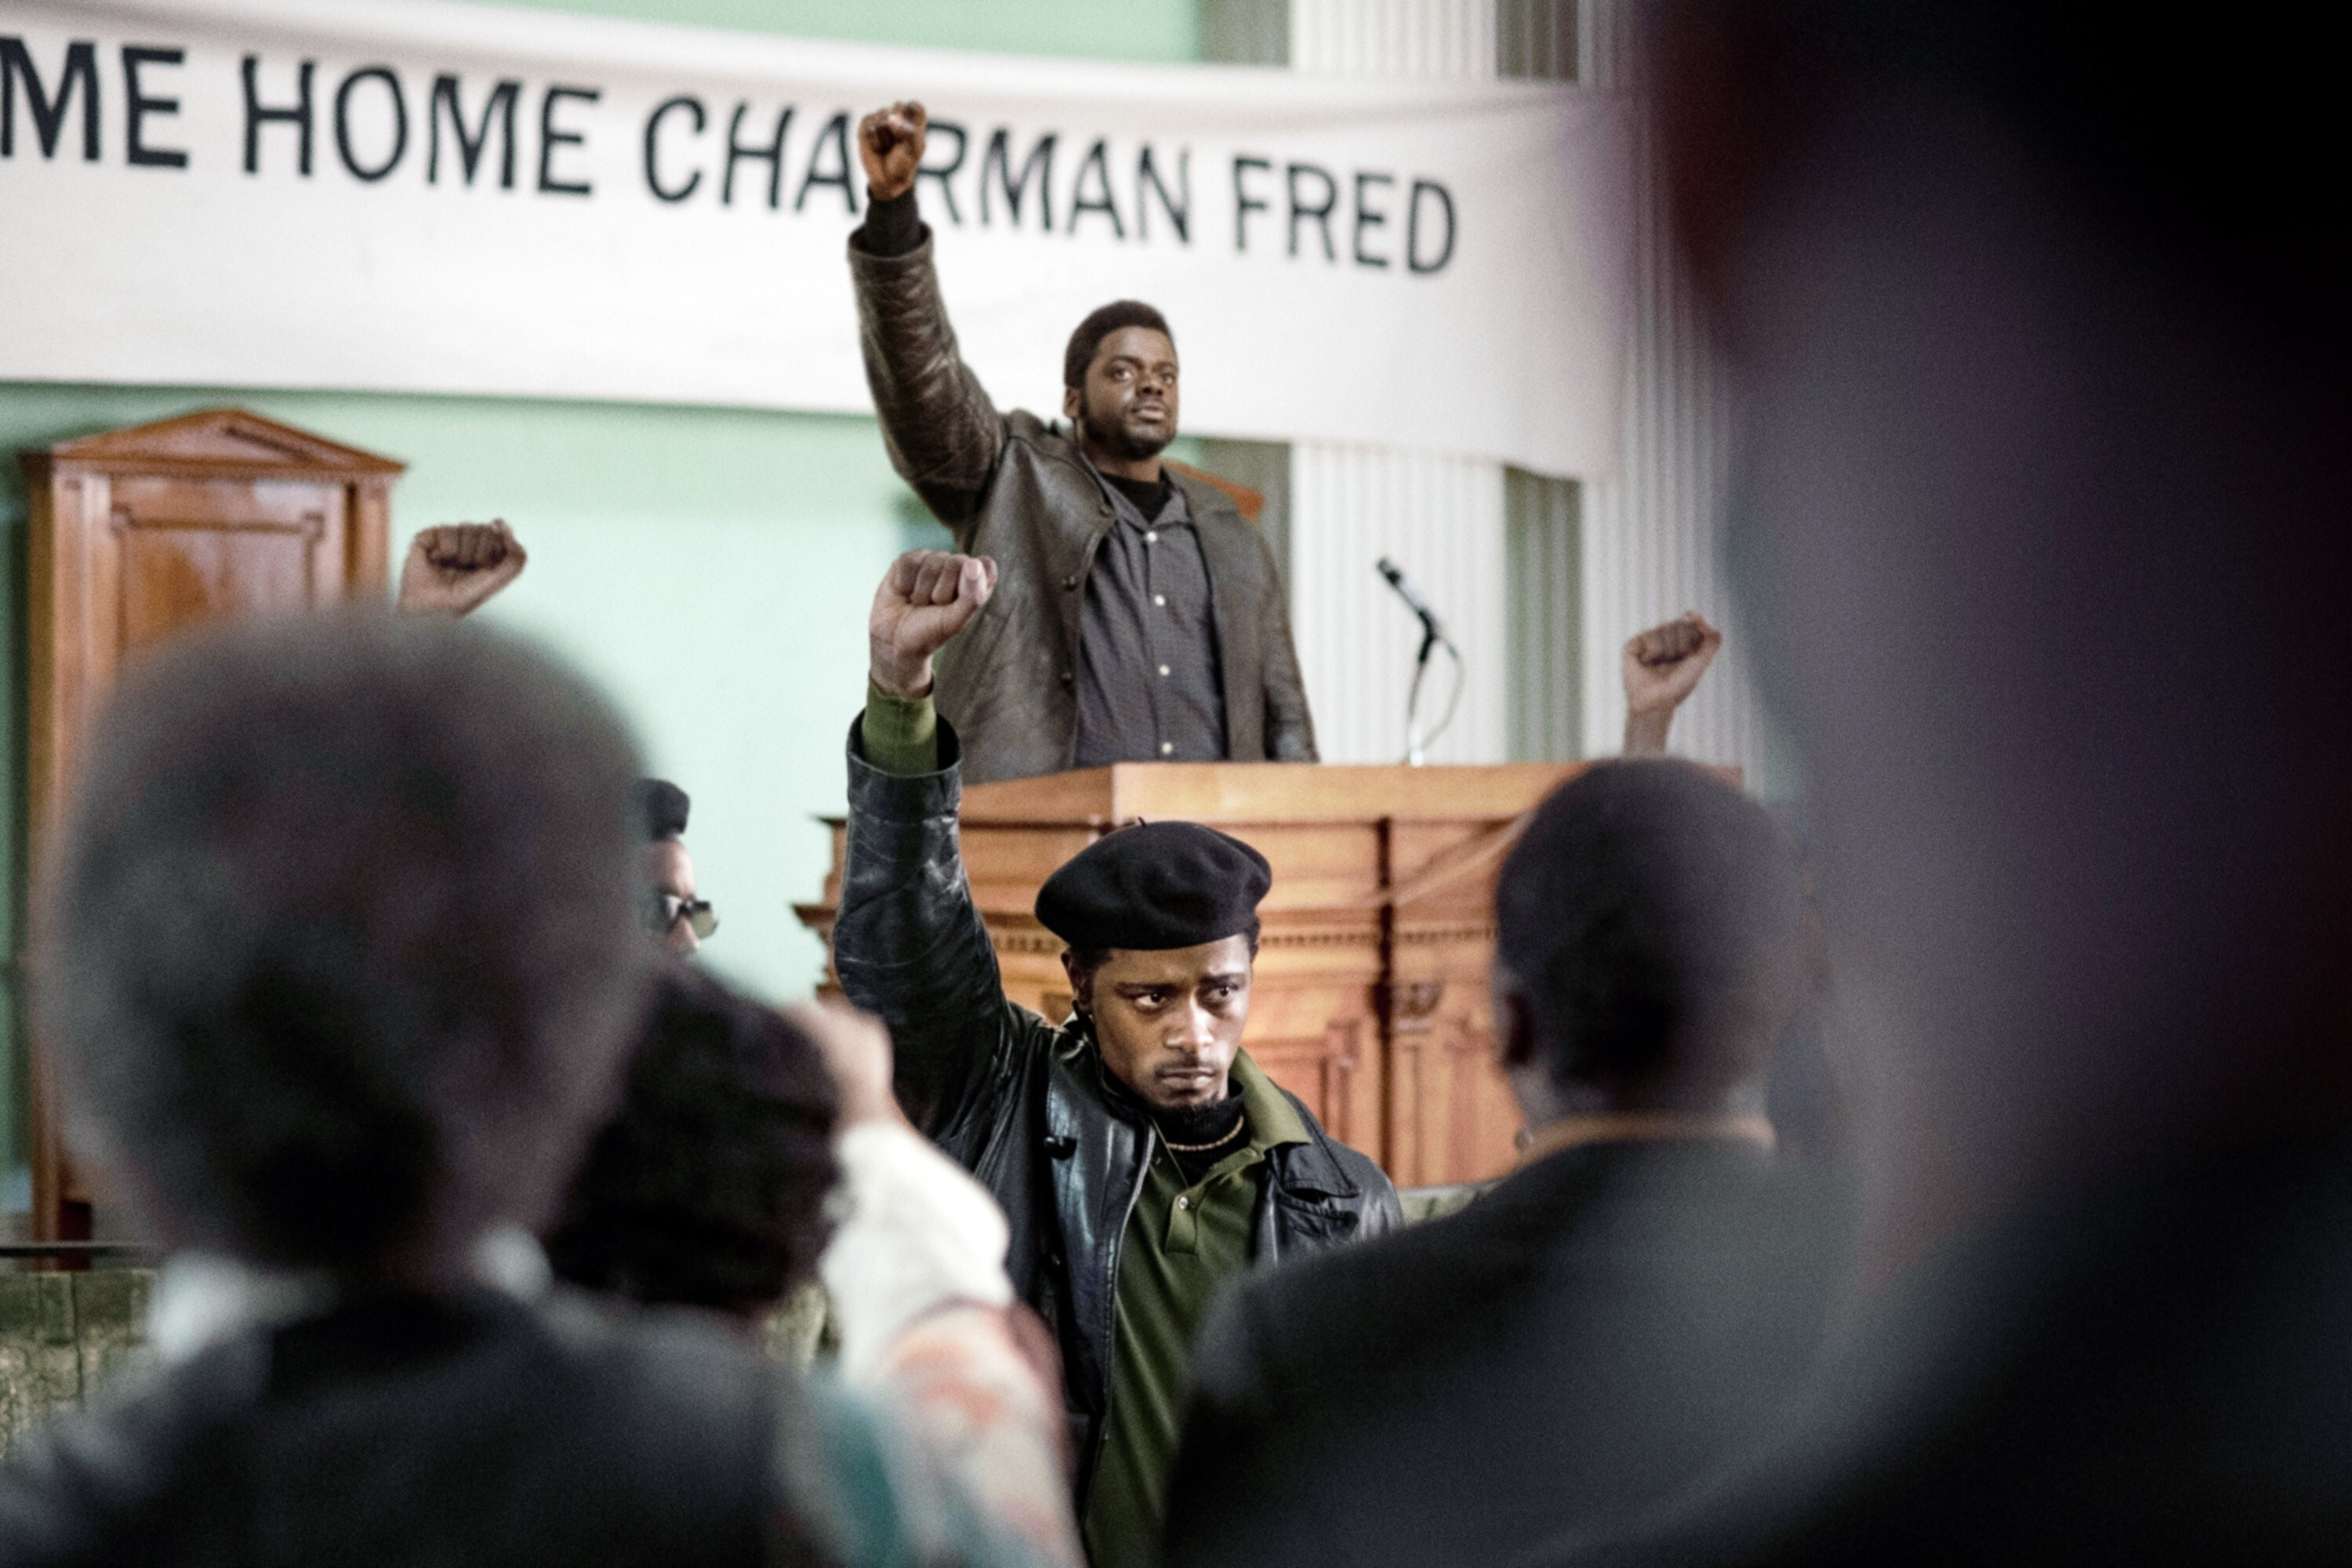 LaKeith Stanfield as William O'Neal raises his fist in the air, mirroring the same pose as Daniel Kaluuya as Fred Hampton, who is standing on a stage behind him